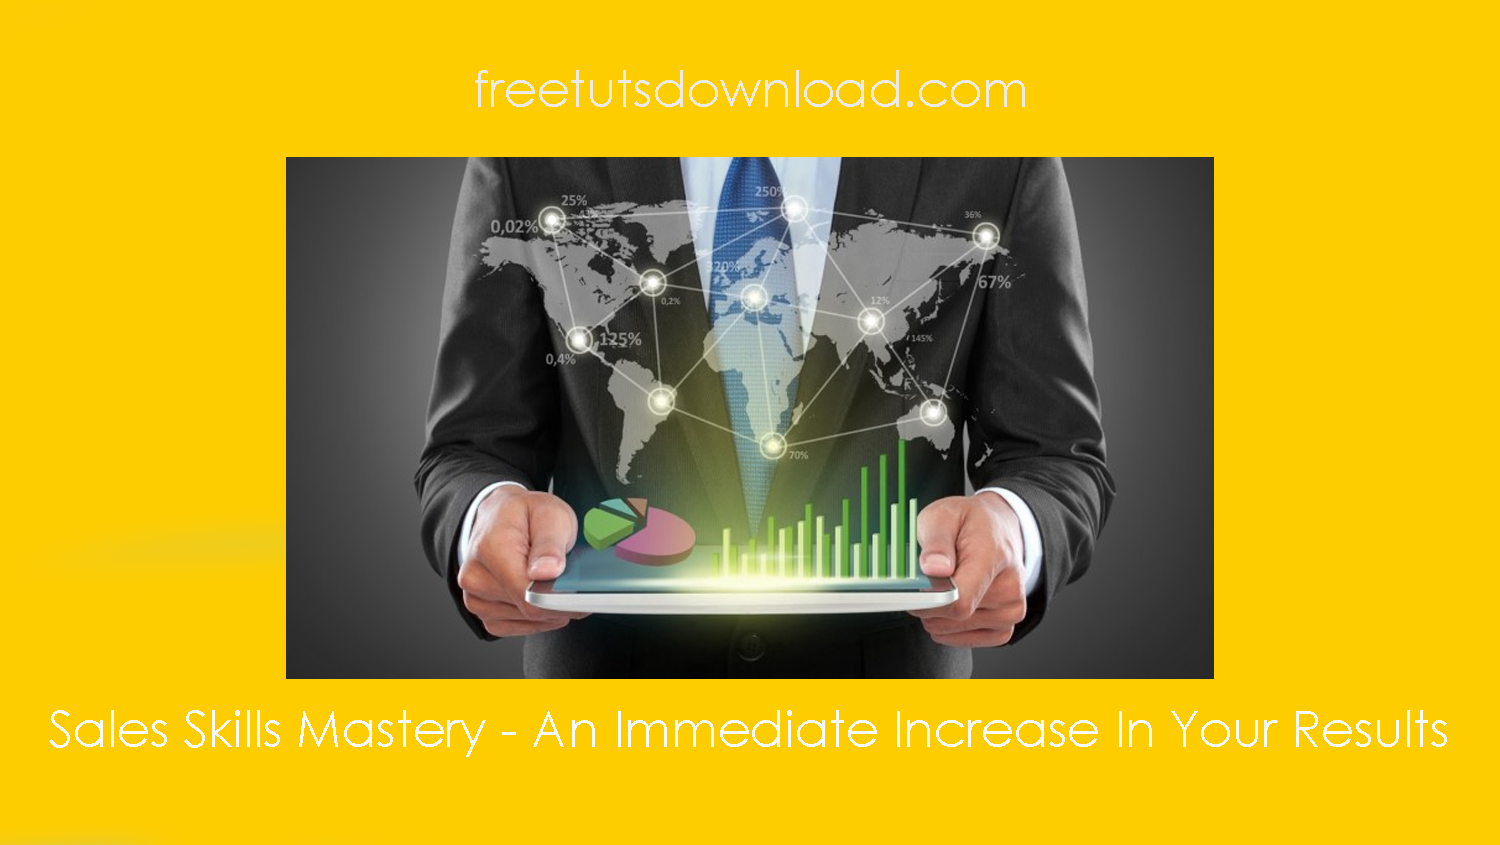 Sales Skills Mastery - An Immediate Increase In Your Results free download